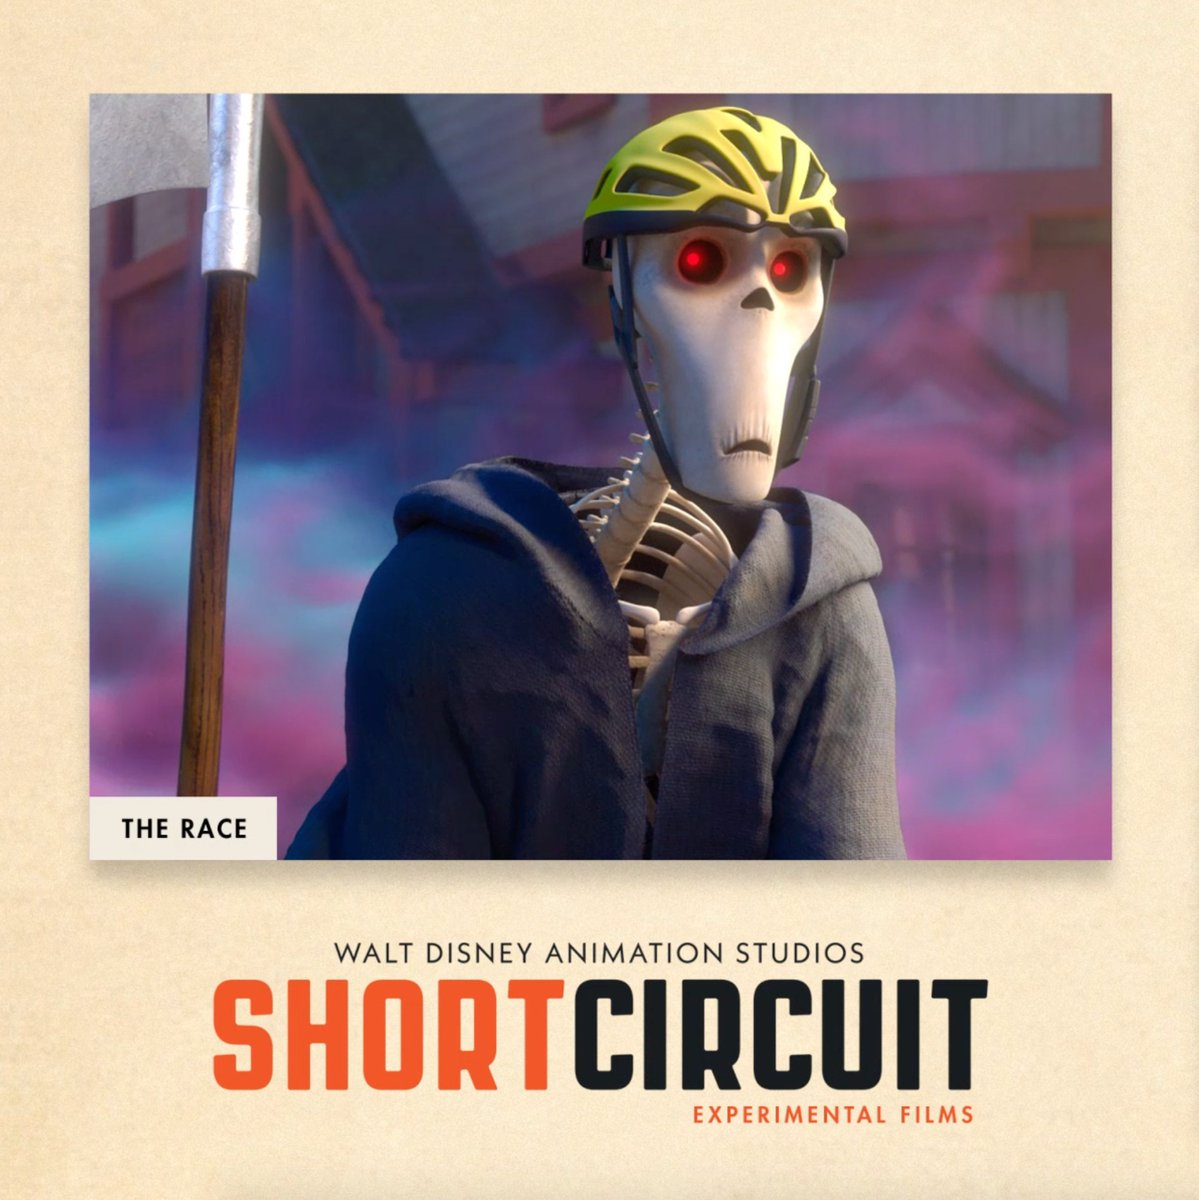 14 experimental shorts. 14 imaginative journeys. Embark on them all and stream @DisneyAnimation's Short Circuit tomorrow Jan. 24, only on #DisneyPlus.